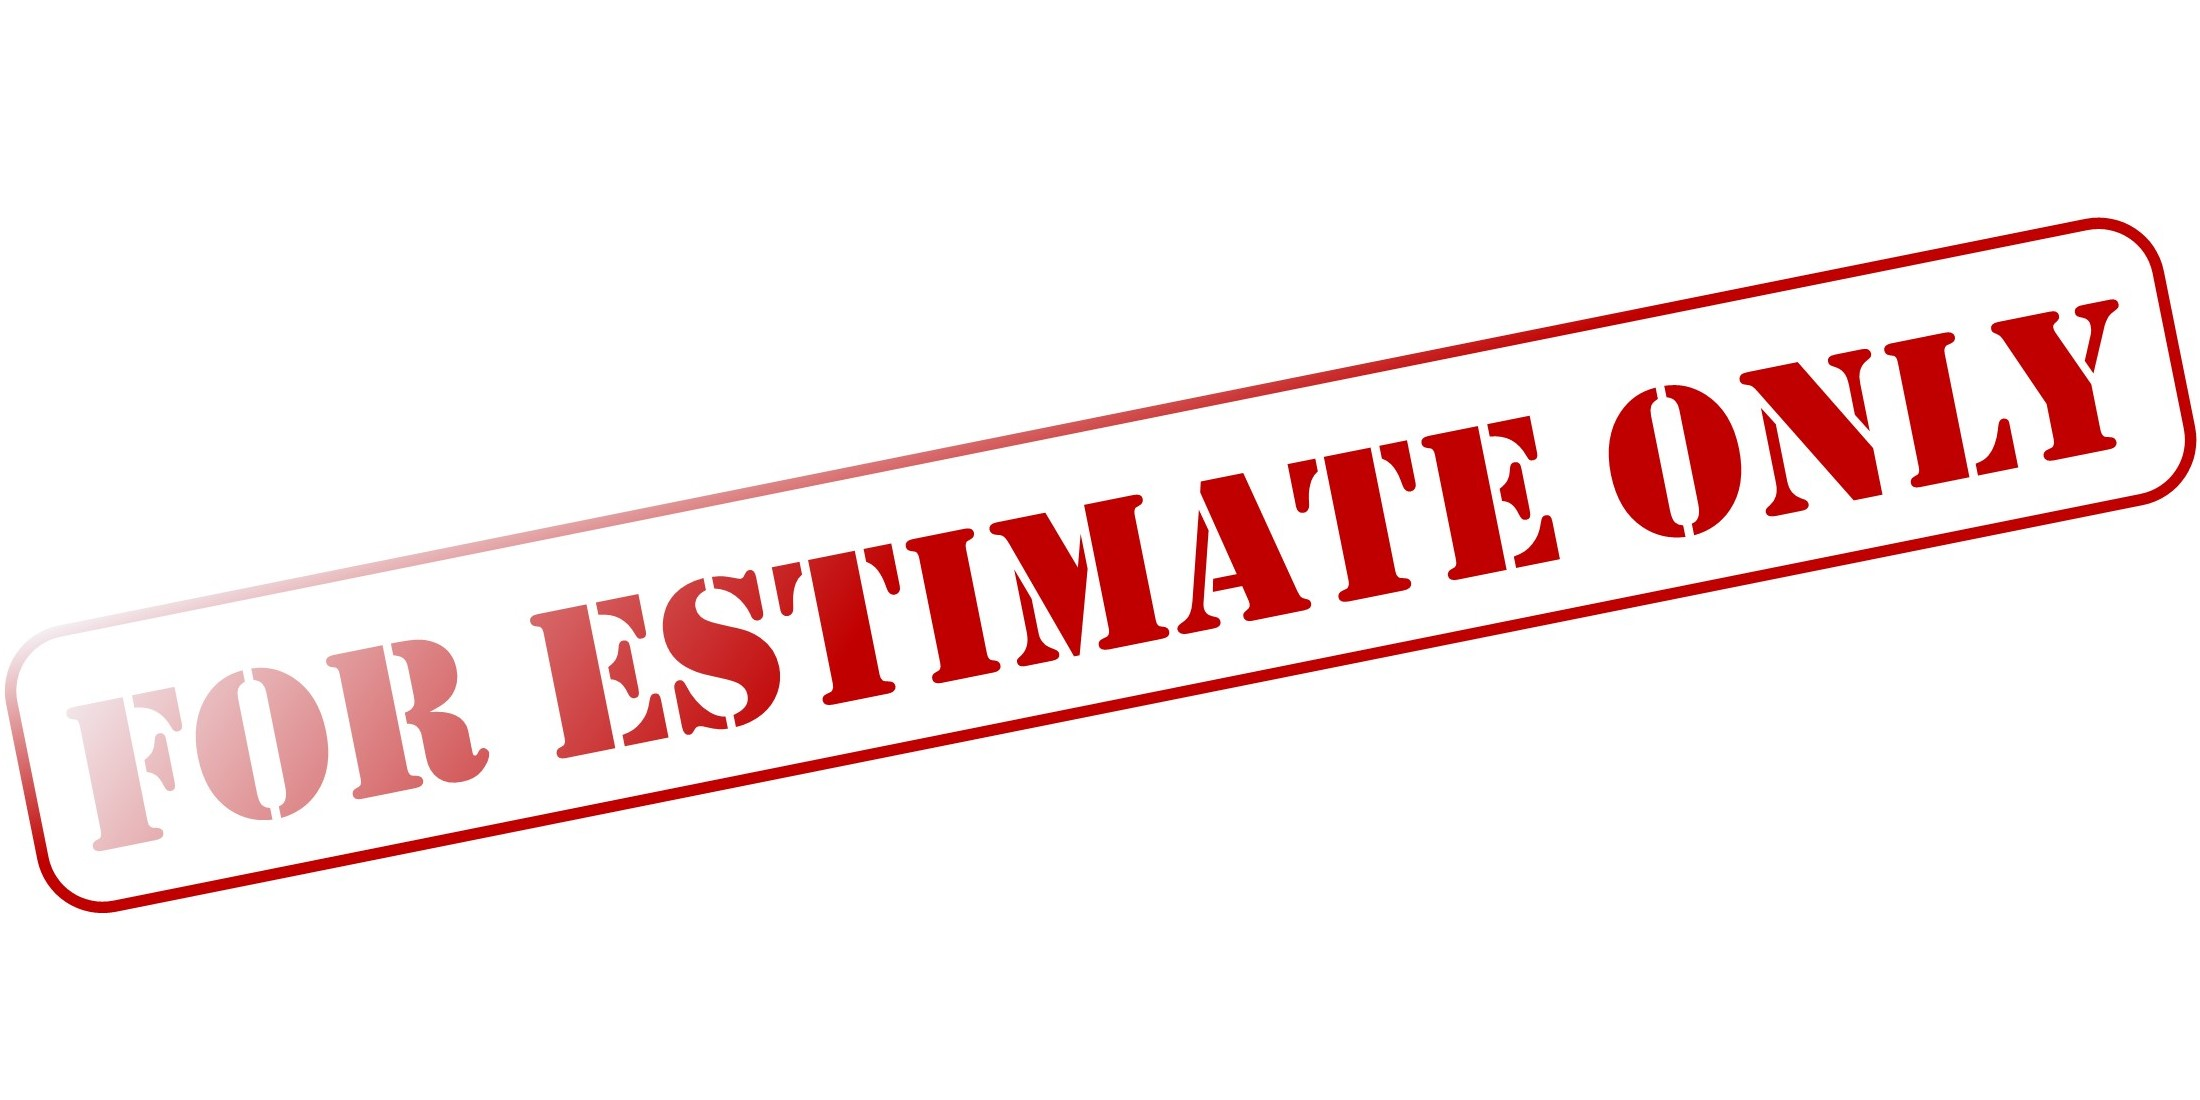 Beware Dramatic Increases in Estimated Gift Annuity Liabilities